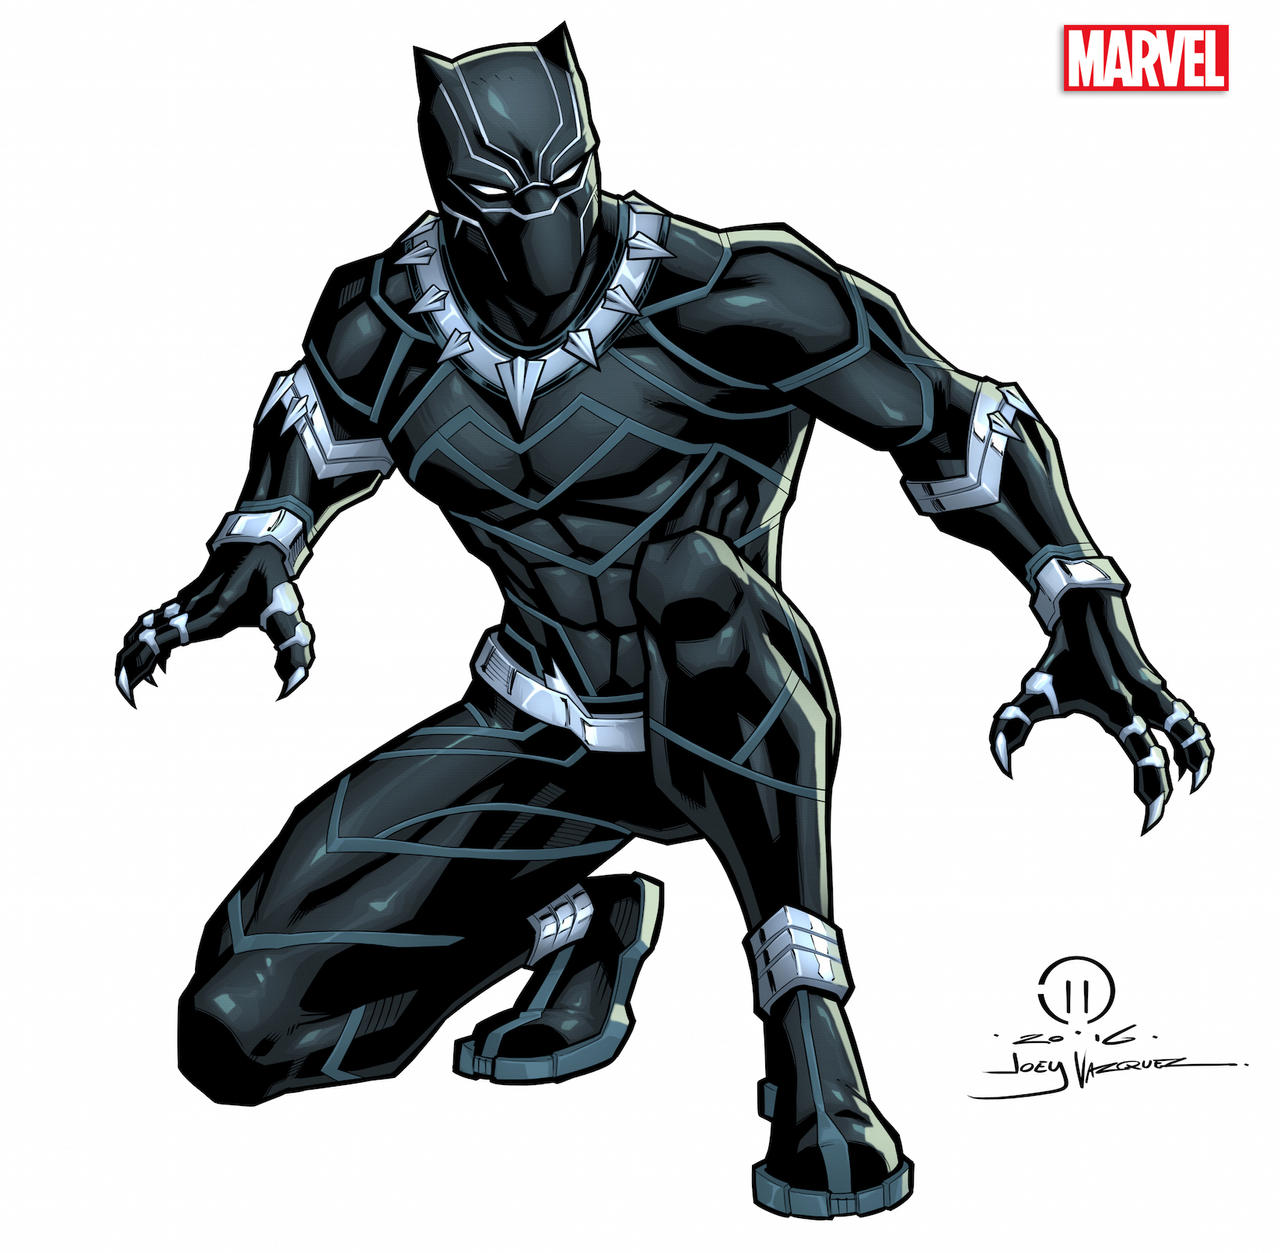 cheeks 74 2512 200 black panther licensing art by joeyvazquez